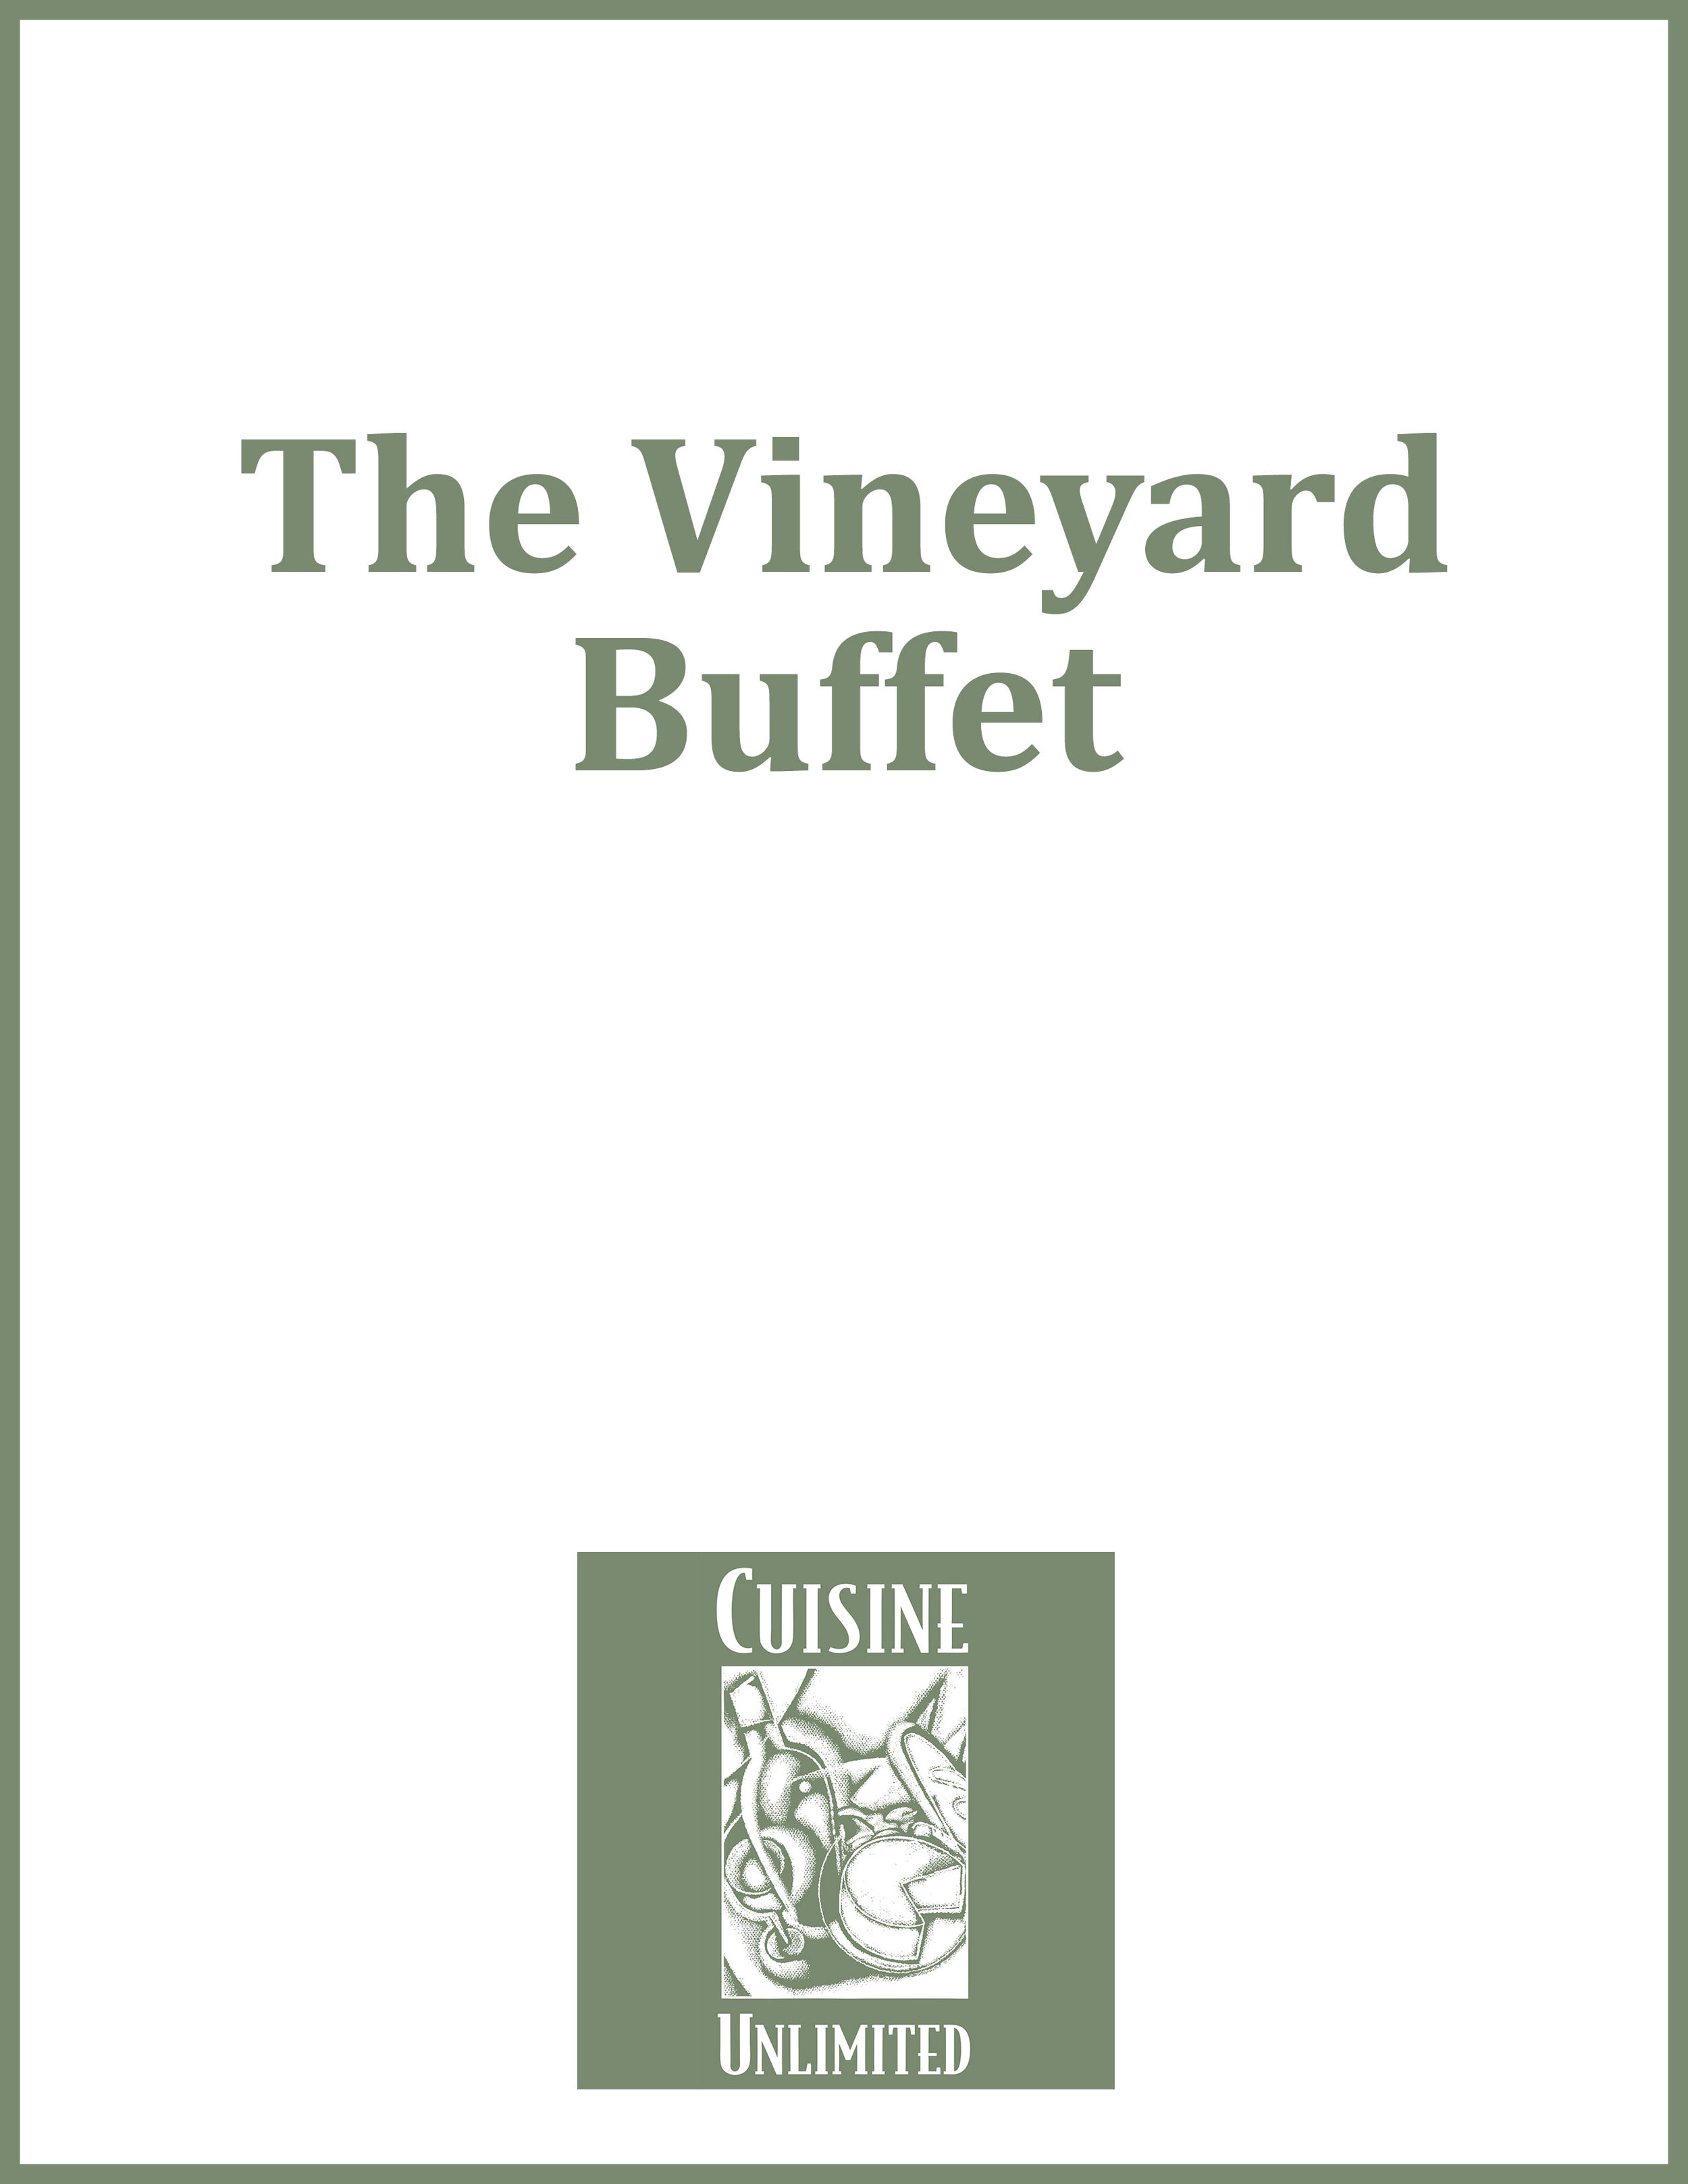 The Vineyard Buffet